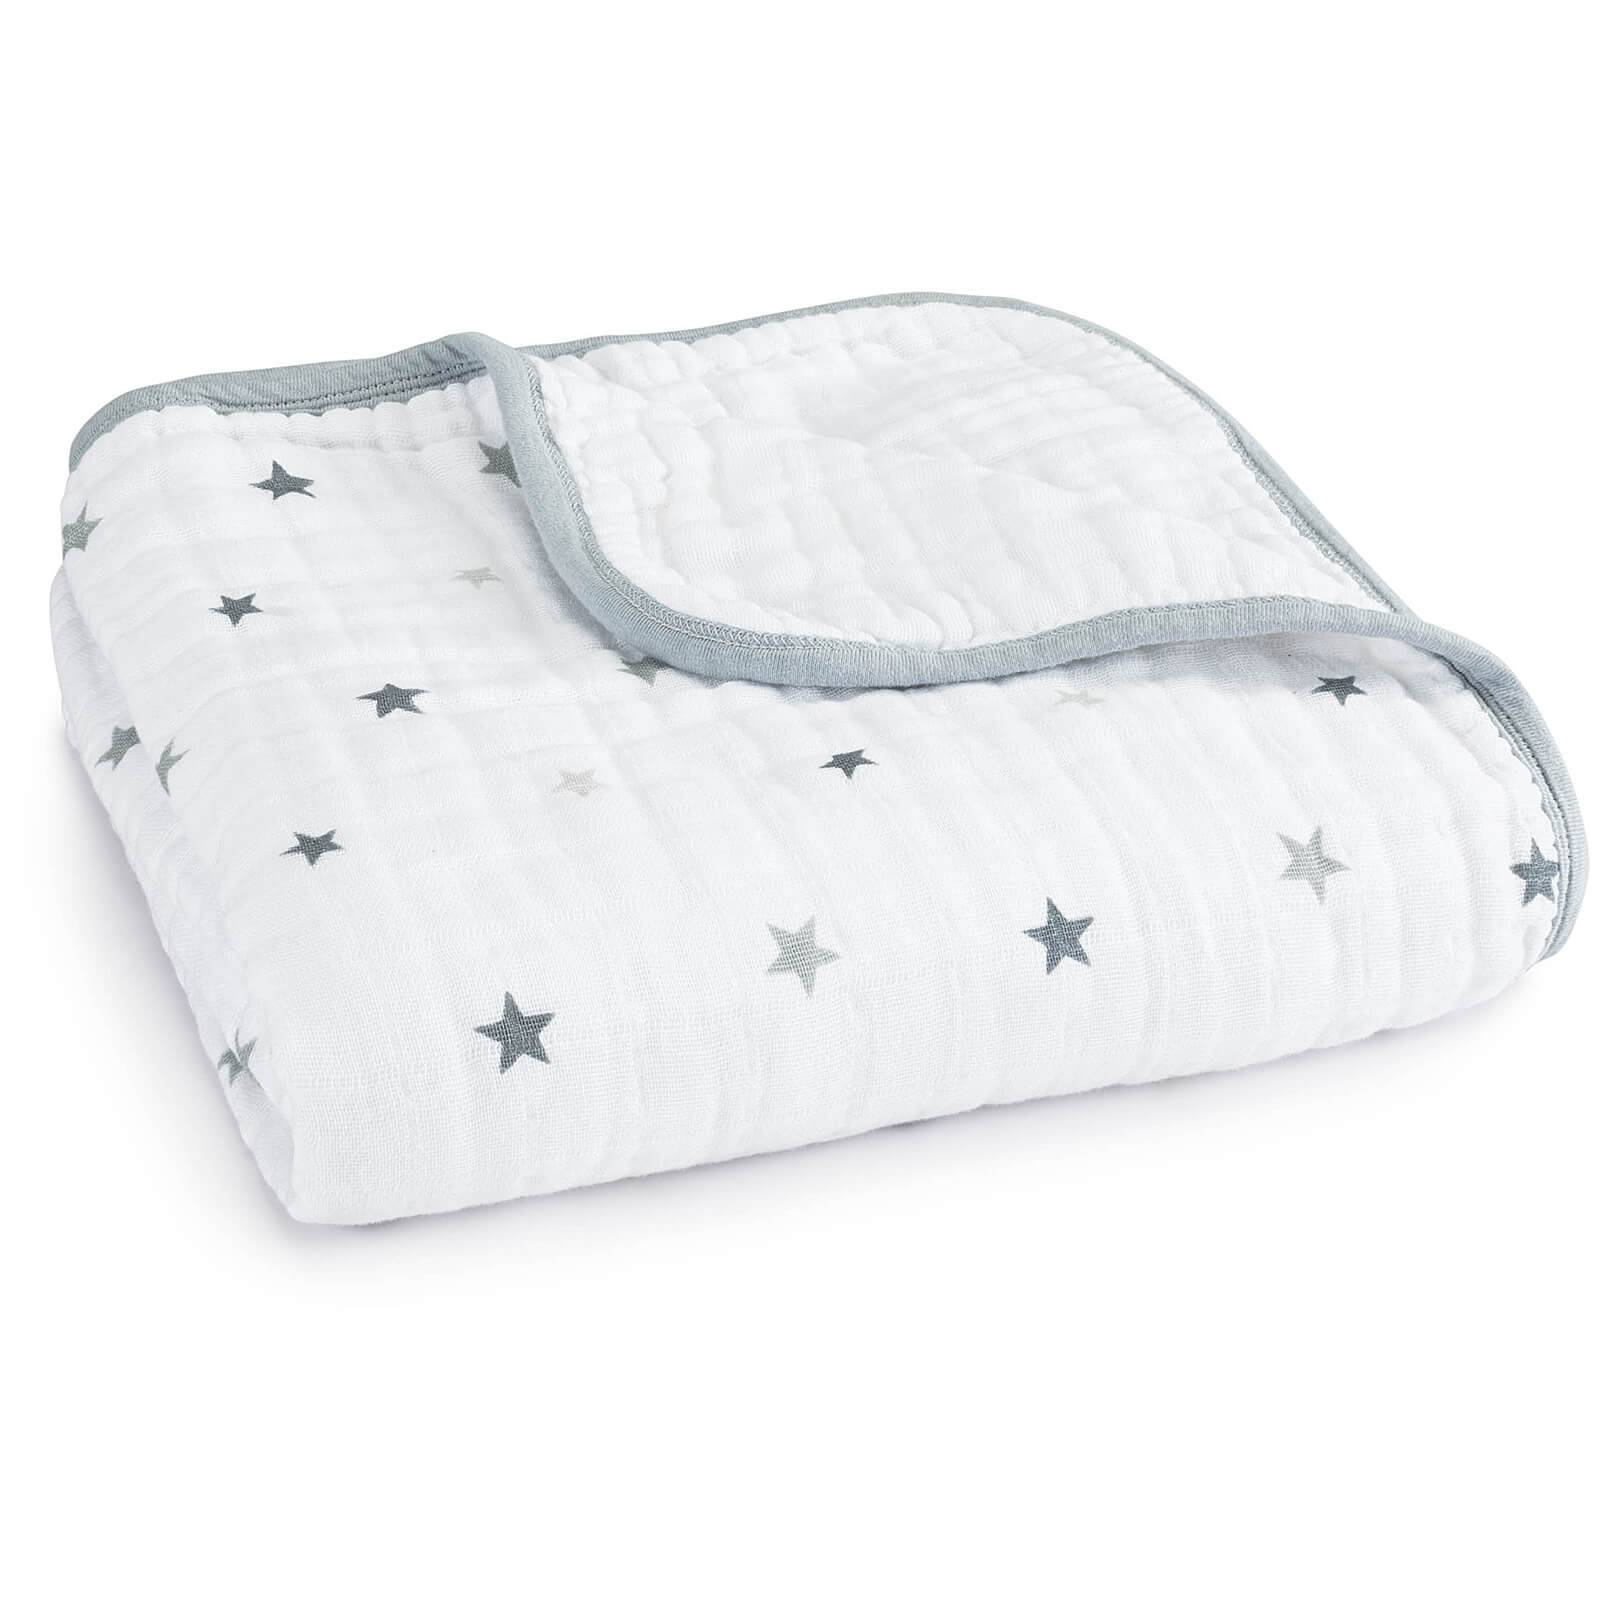 aden + anais Classic Dream Blanket Twinkle